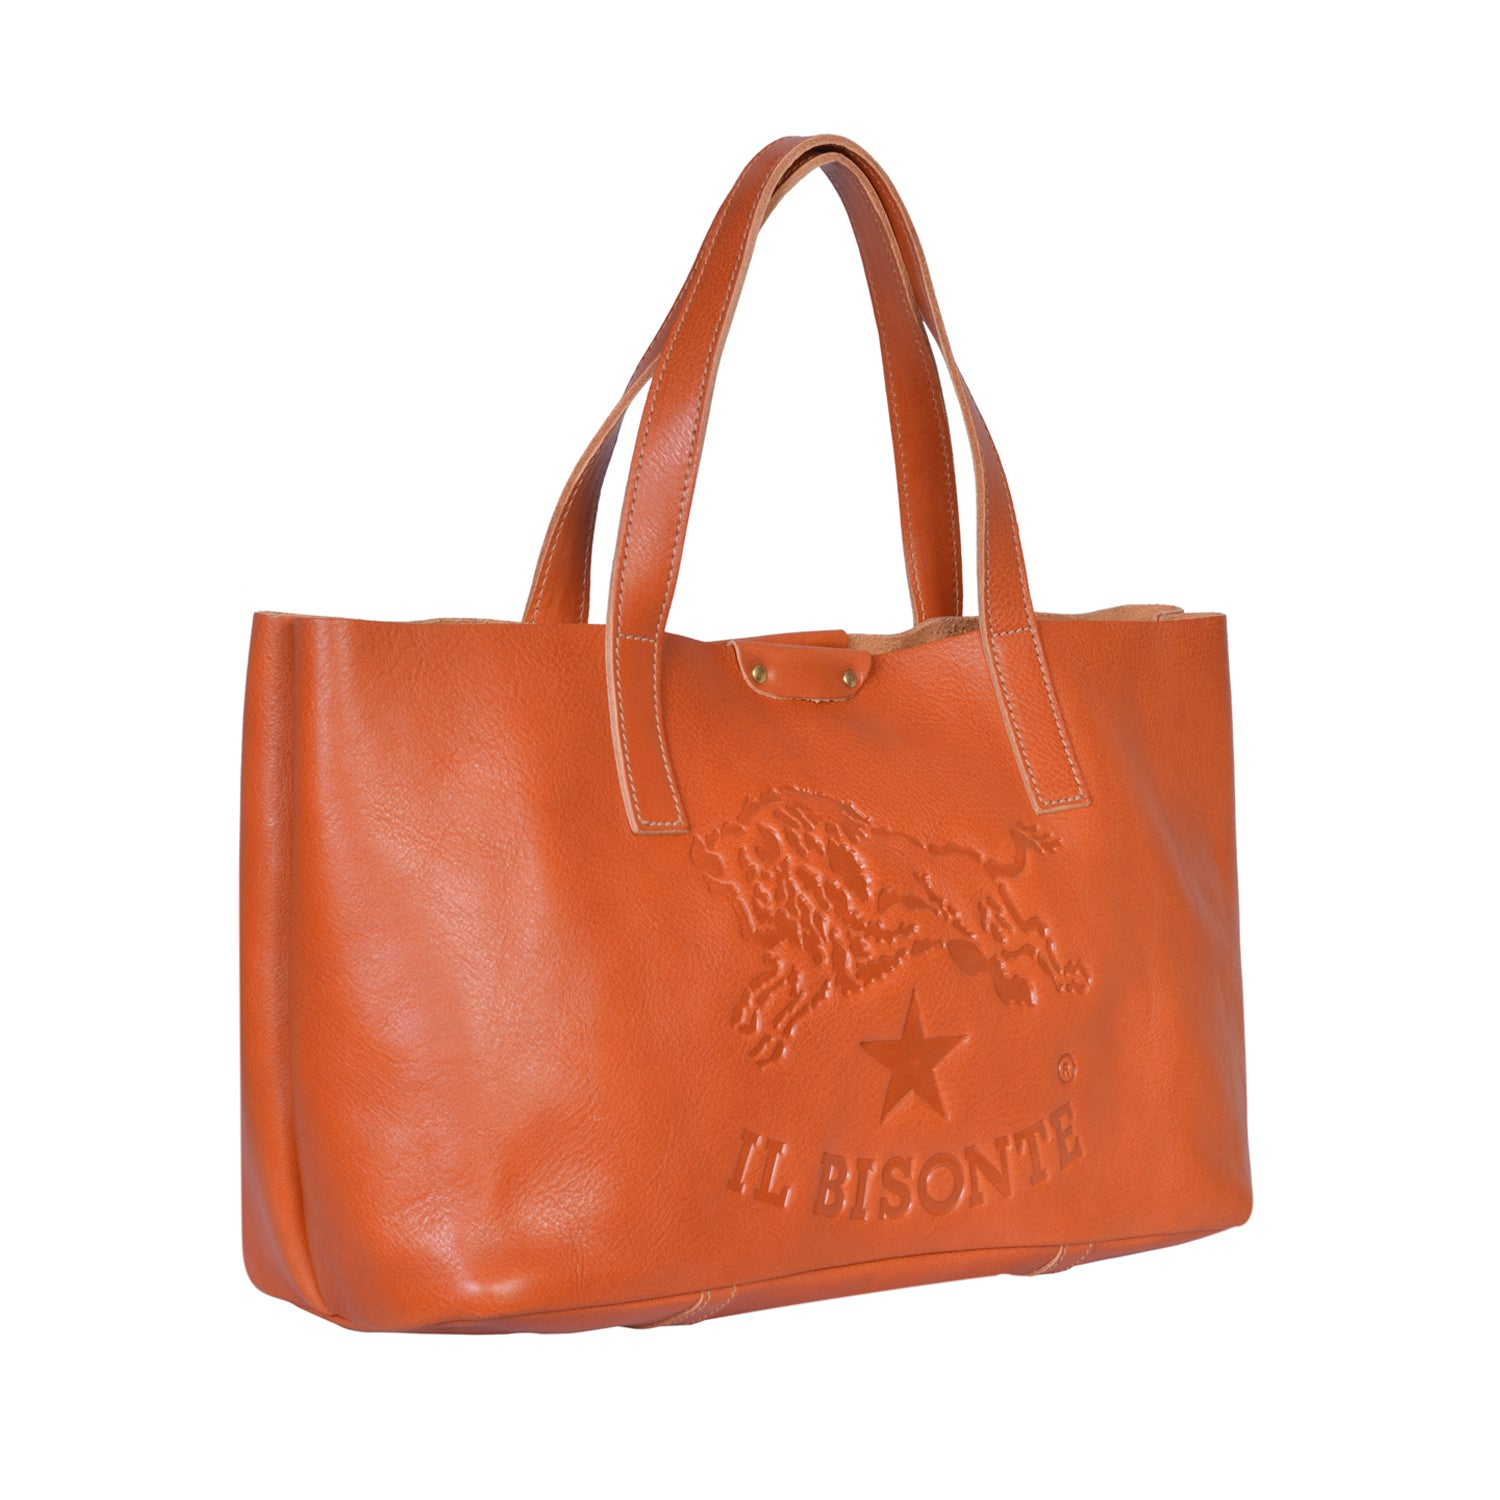 IL BISONTE  PITTI WOMAN'S TOTE BAG IN NATURAL COWHIDE LEATHER